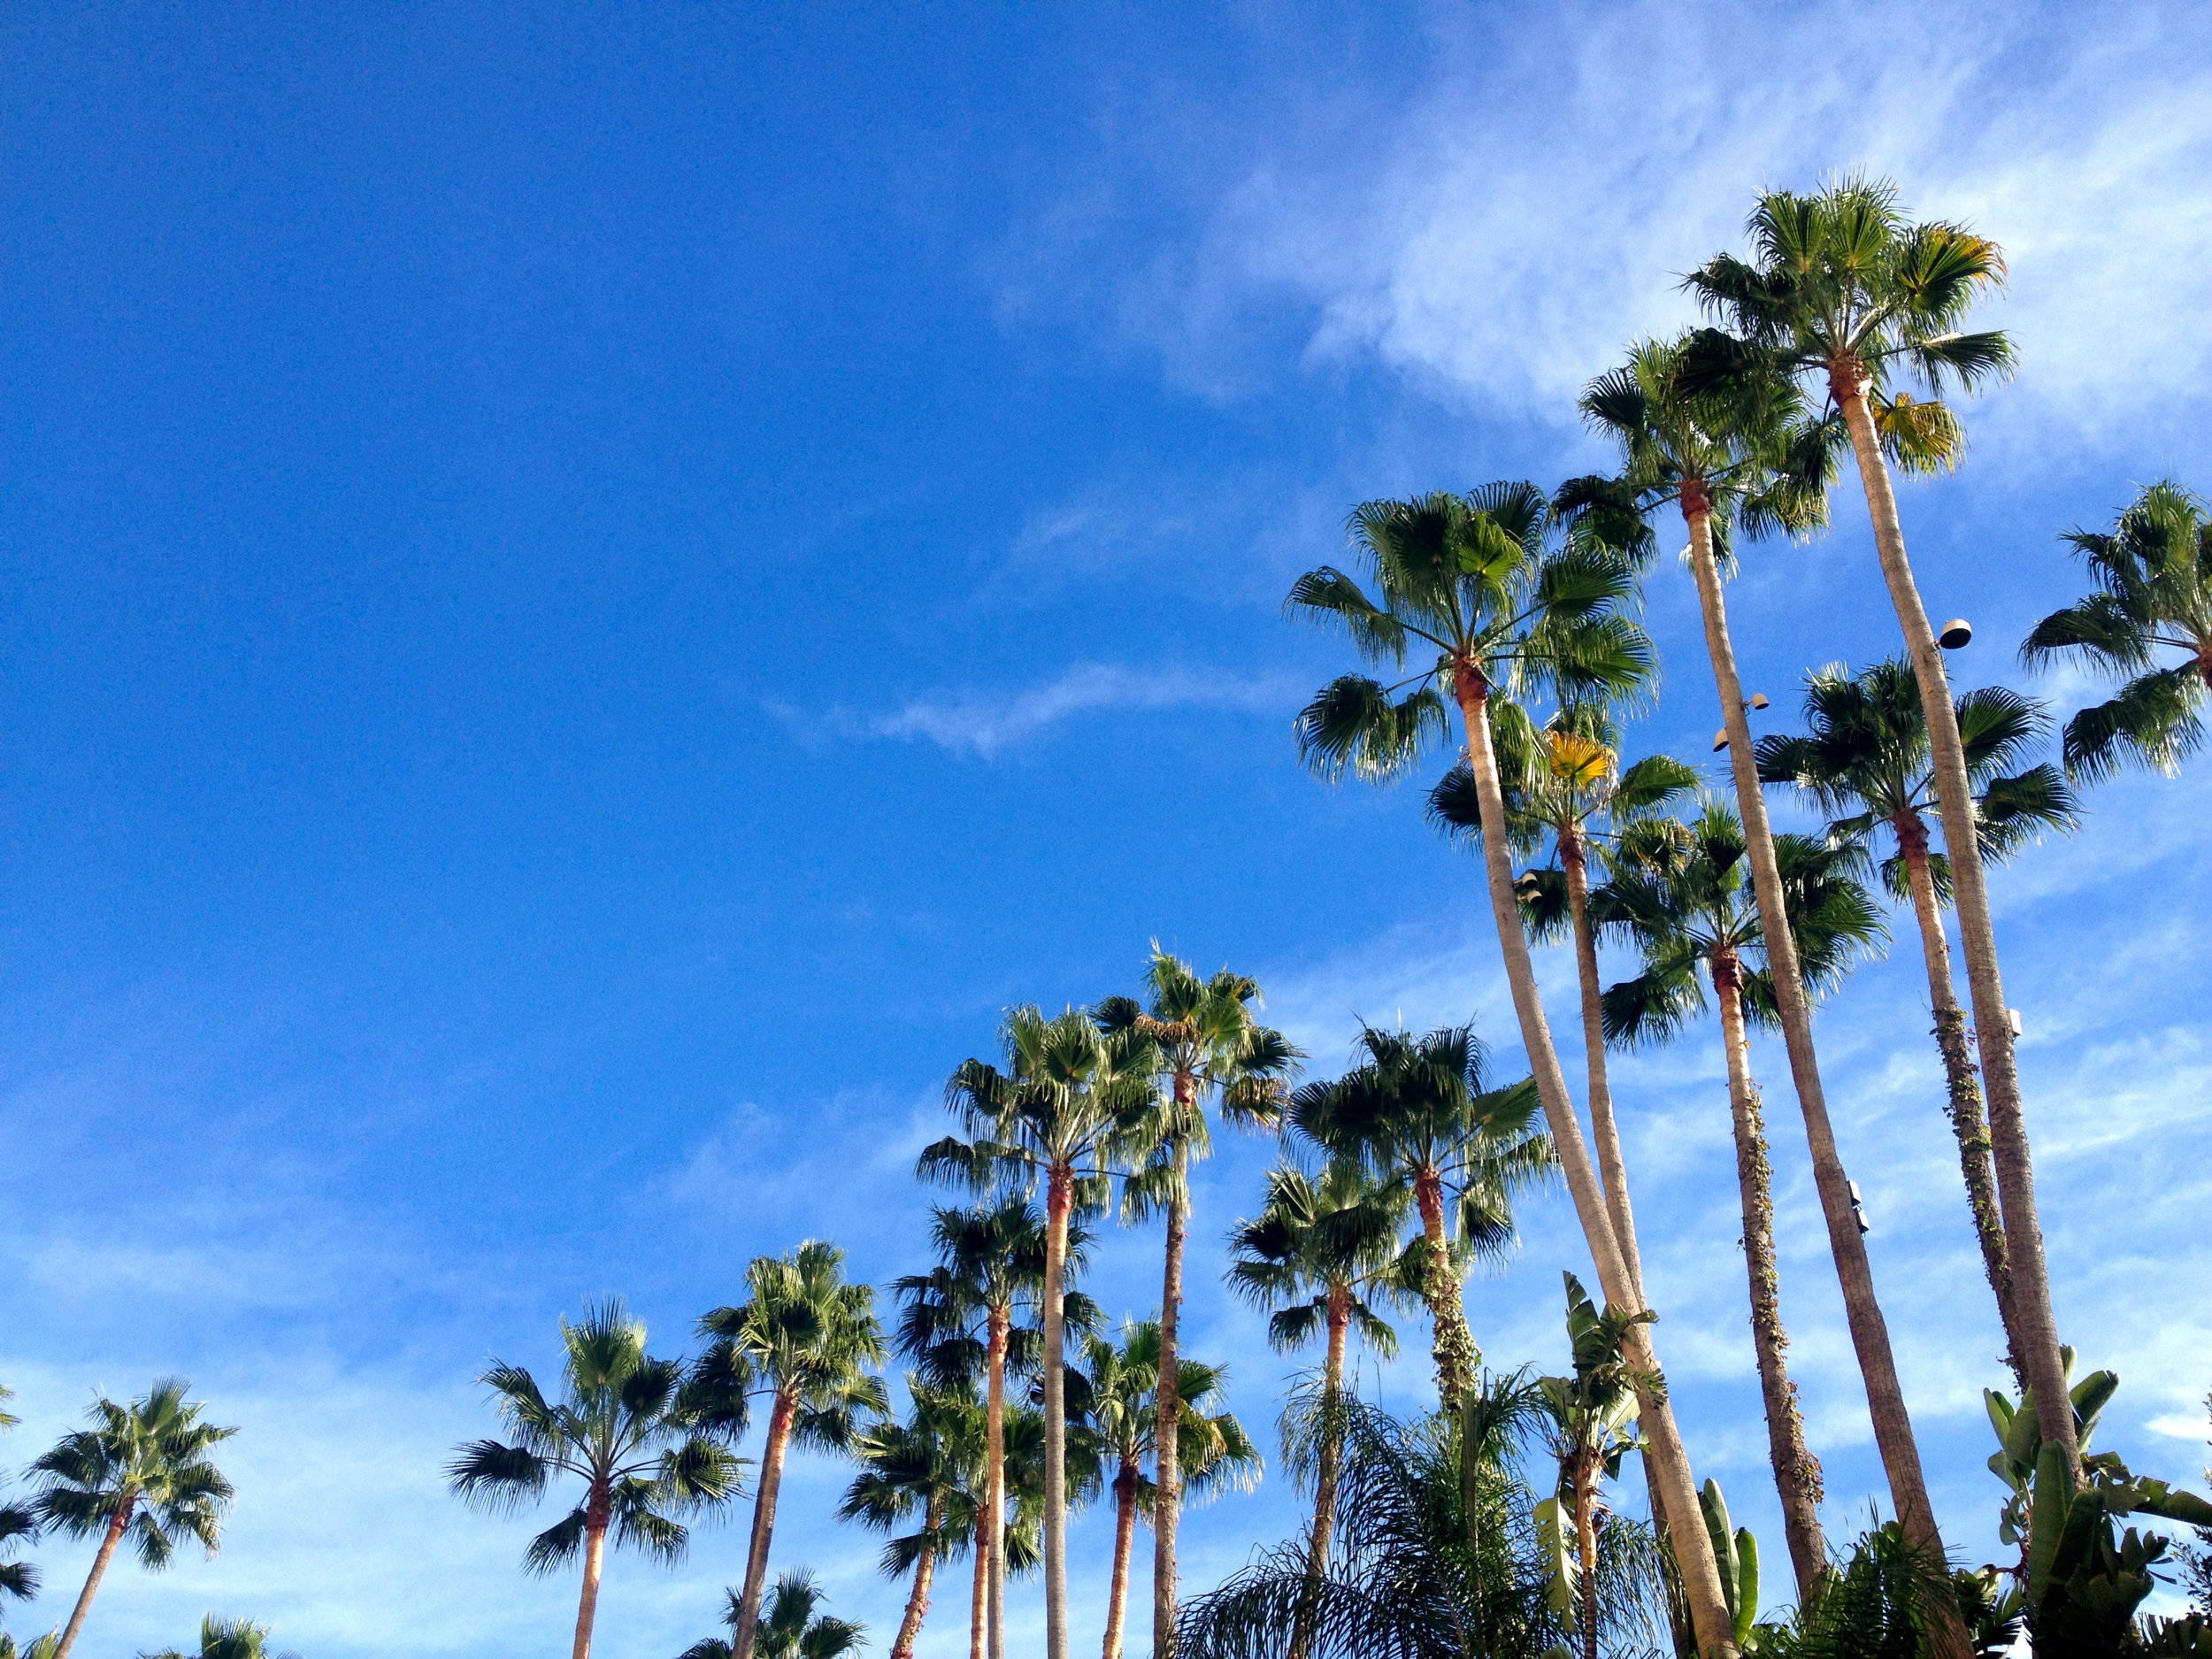 Some true Los Angeles palm trees.